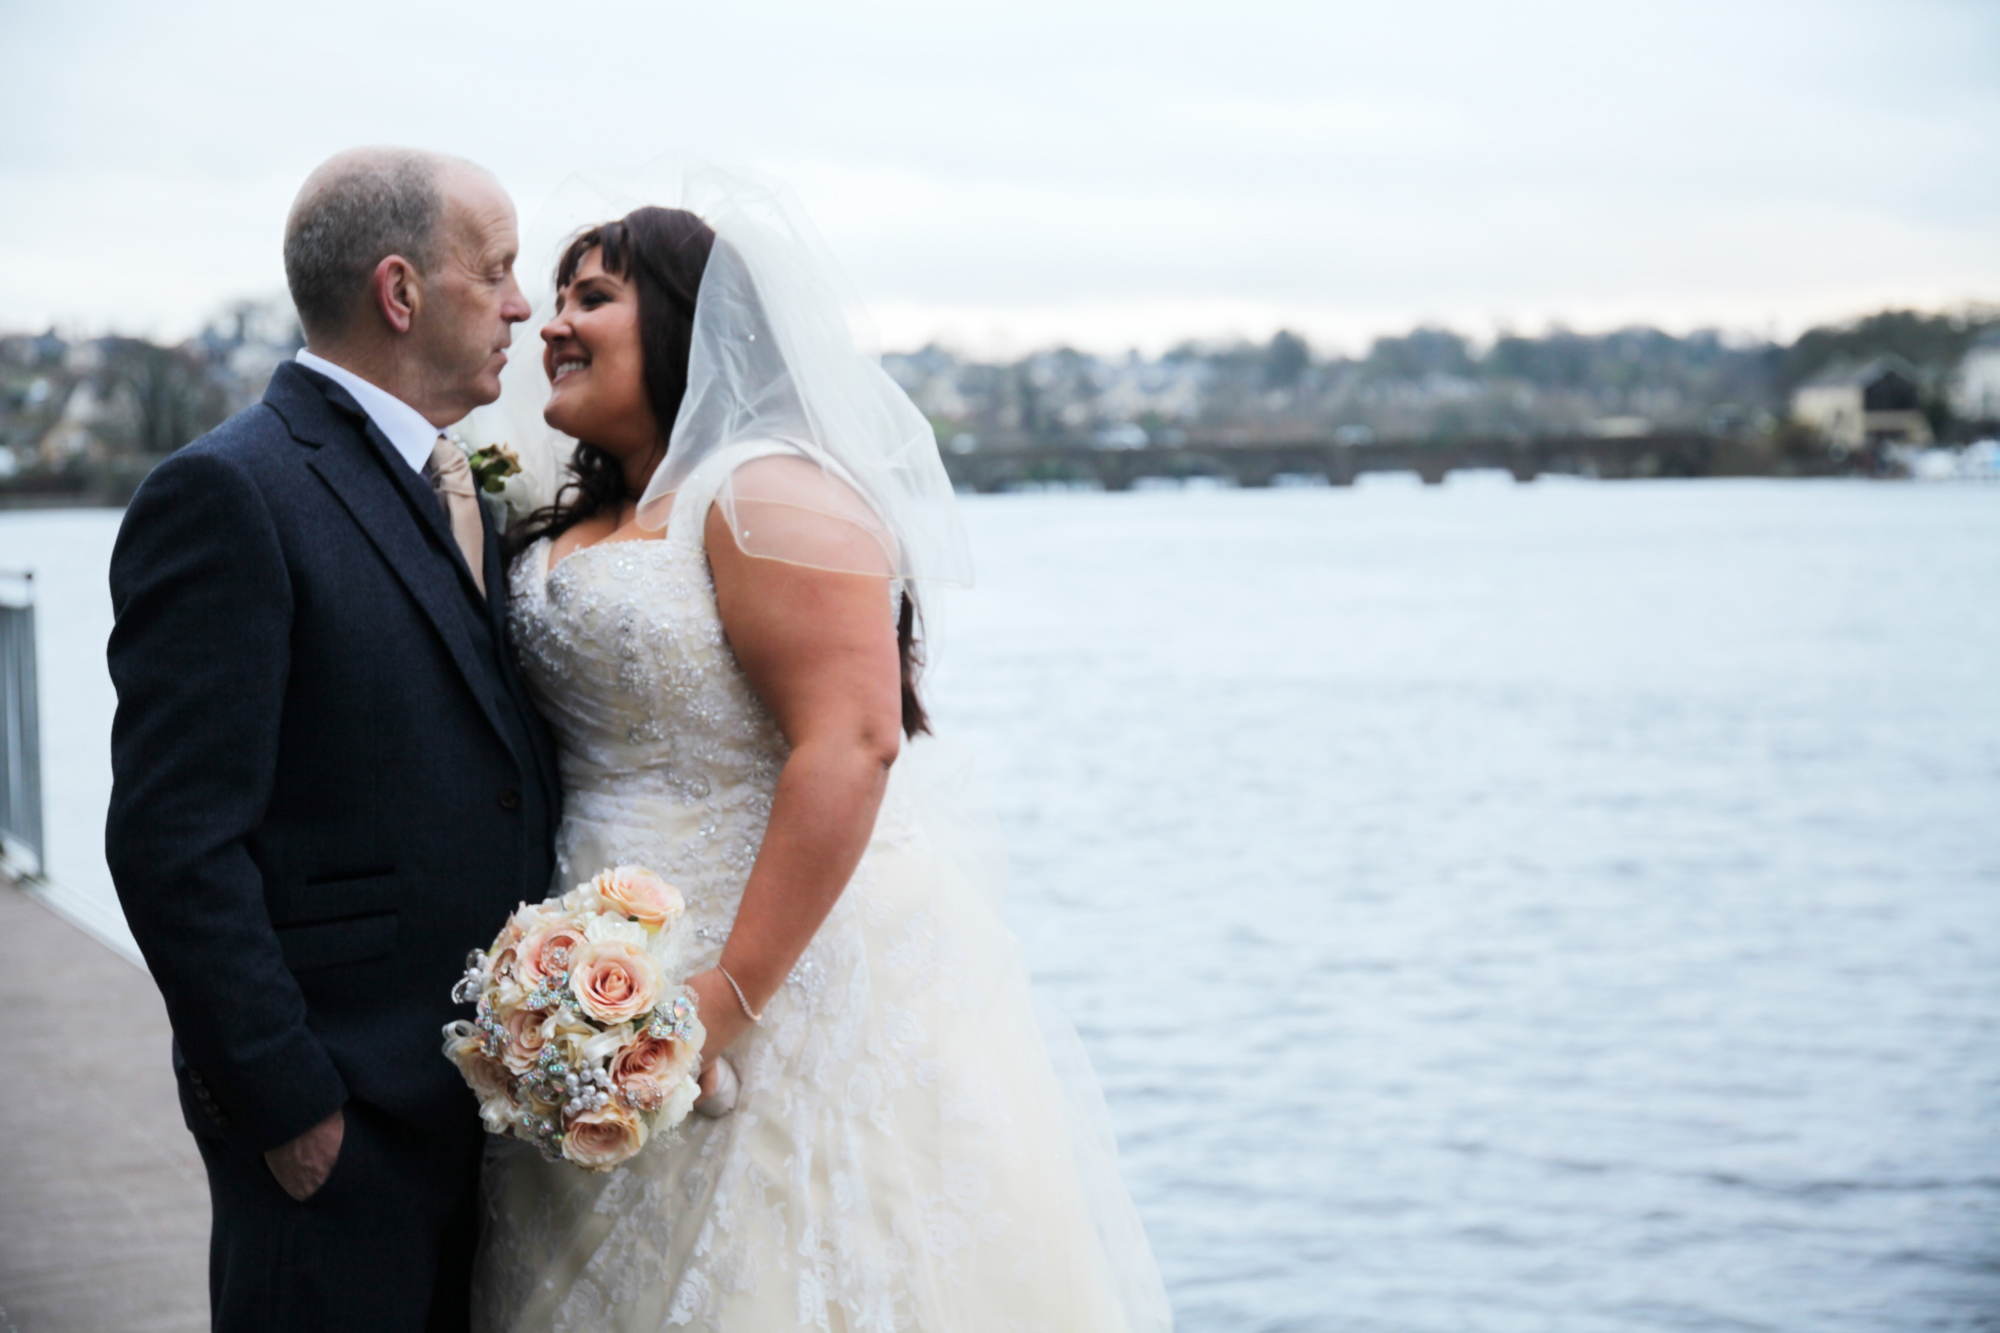 Love, Laughter & Snowfall: Michelle + Danny at The Lakeside Hotel